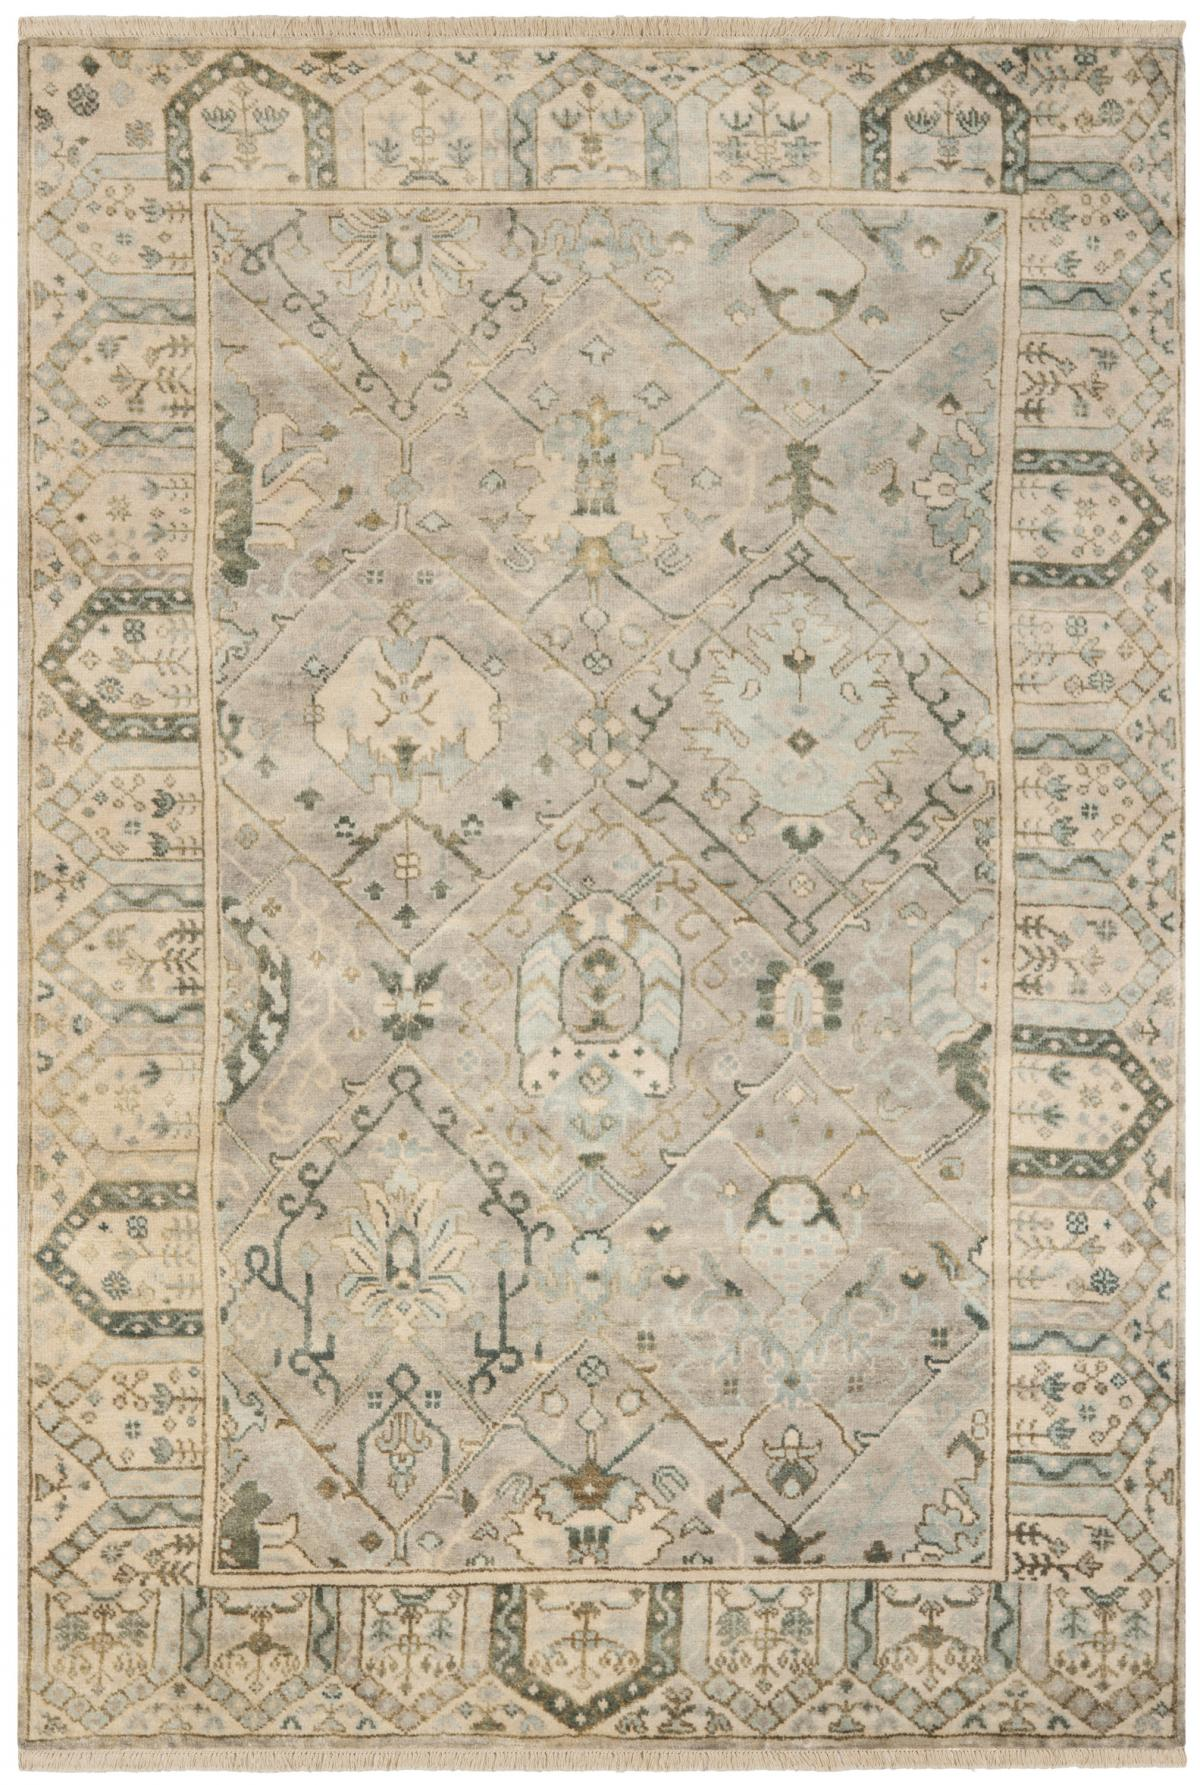 Cool oushak rugs for floorings and rugs ideas with antique oushak rugs